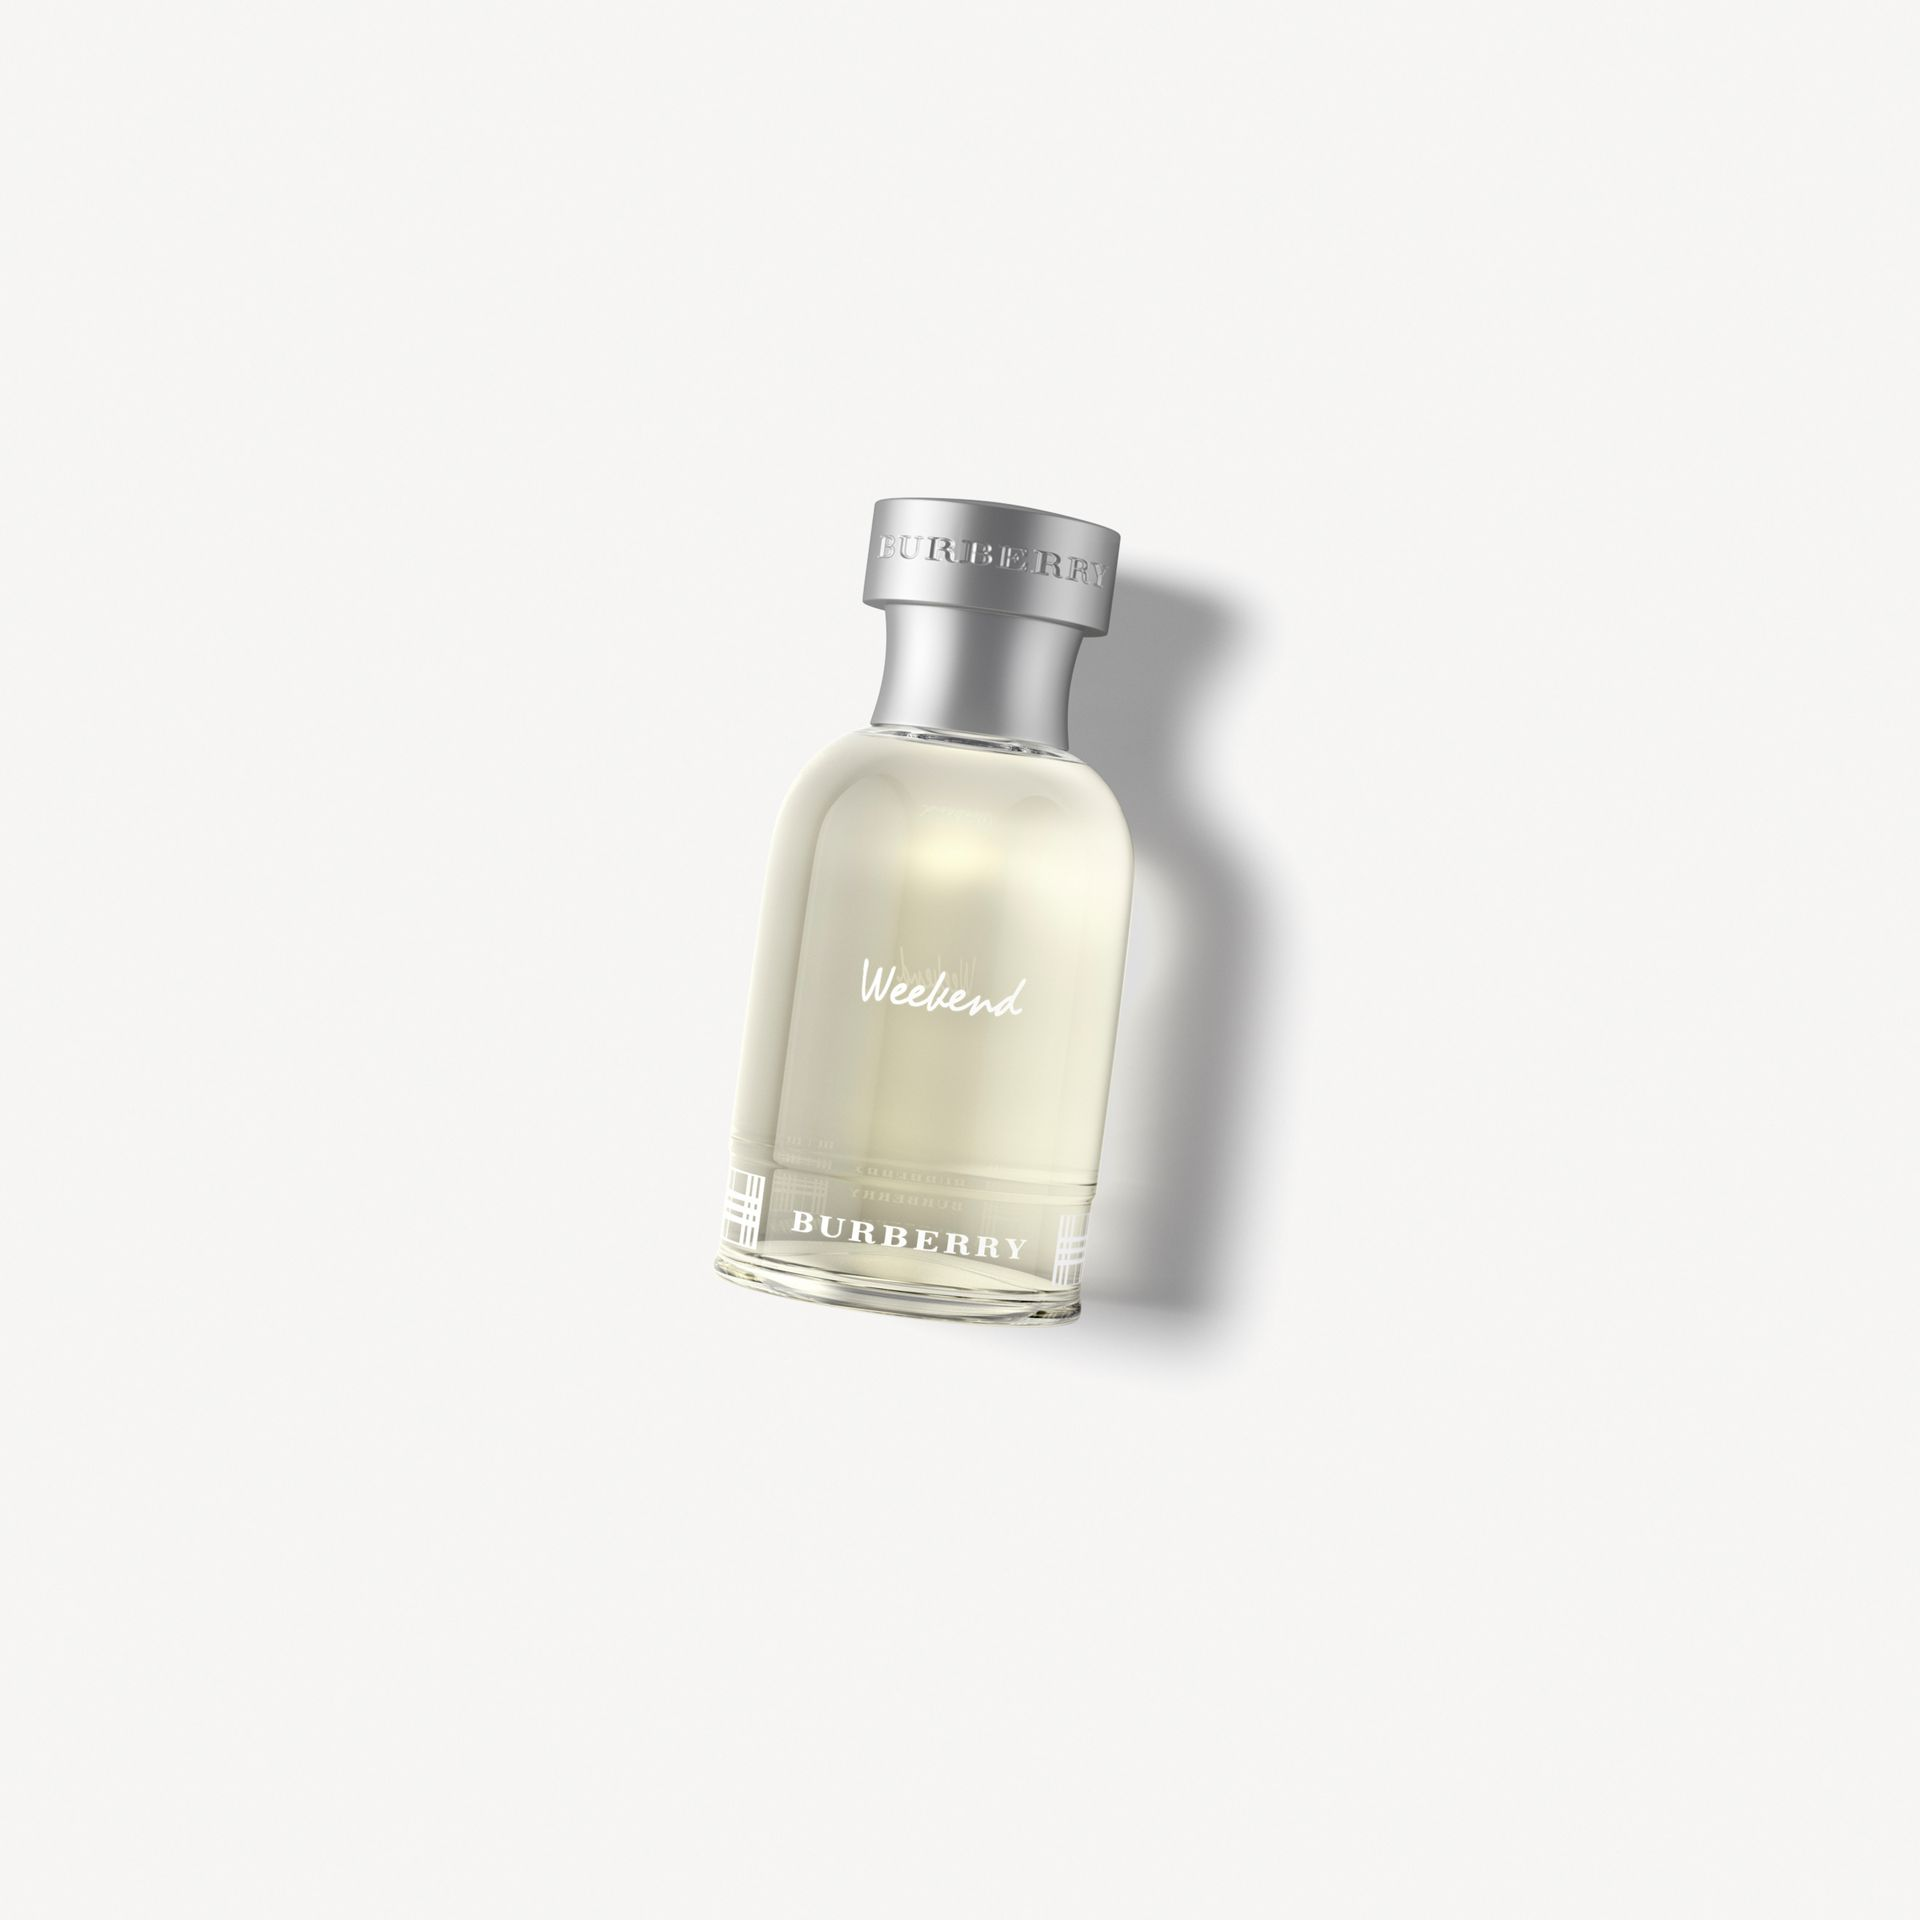 Burberry Weekend Eau de toilette 50 ml - Homme | Burberry - photo de la galerie 0